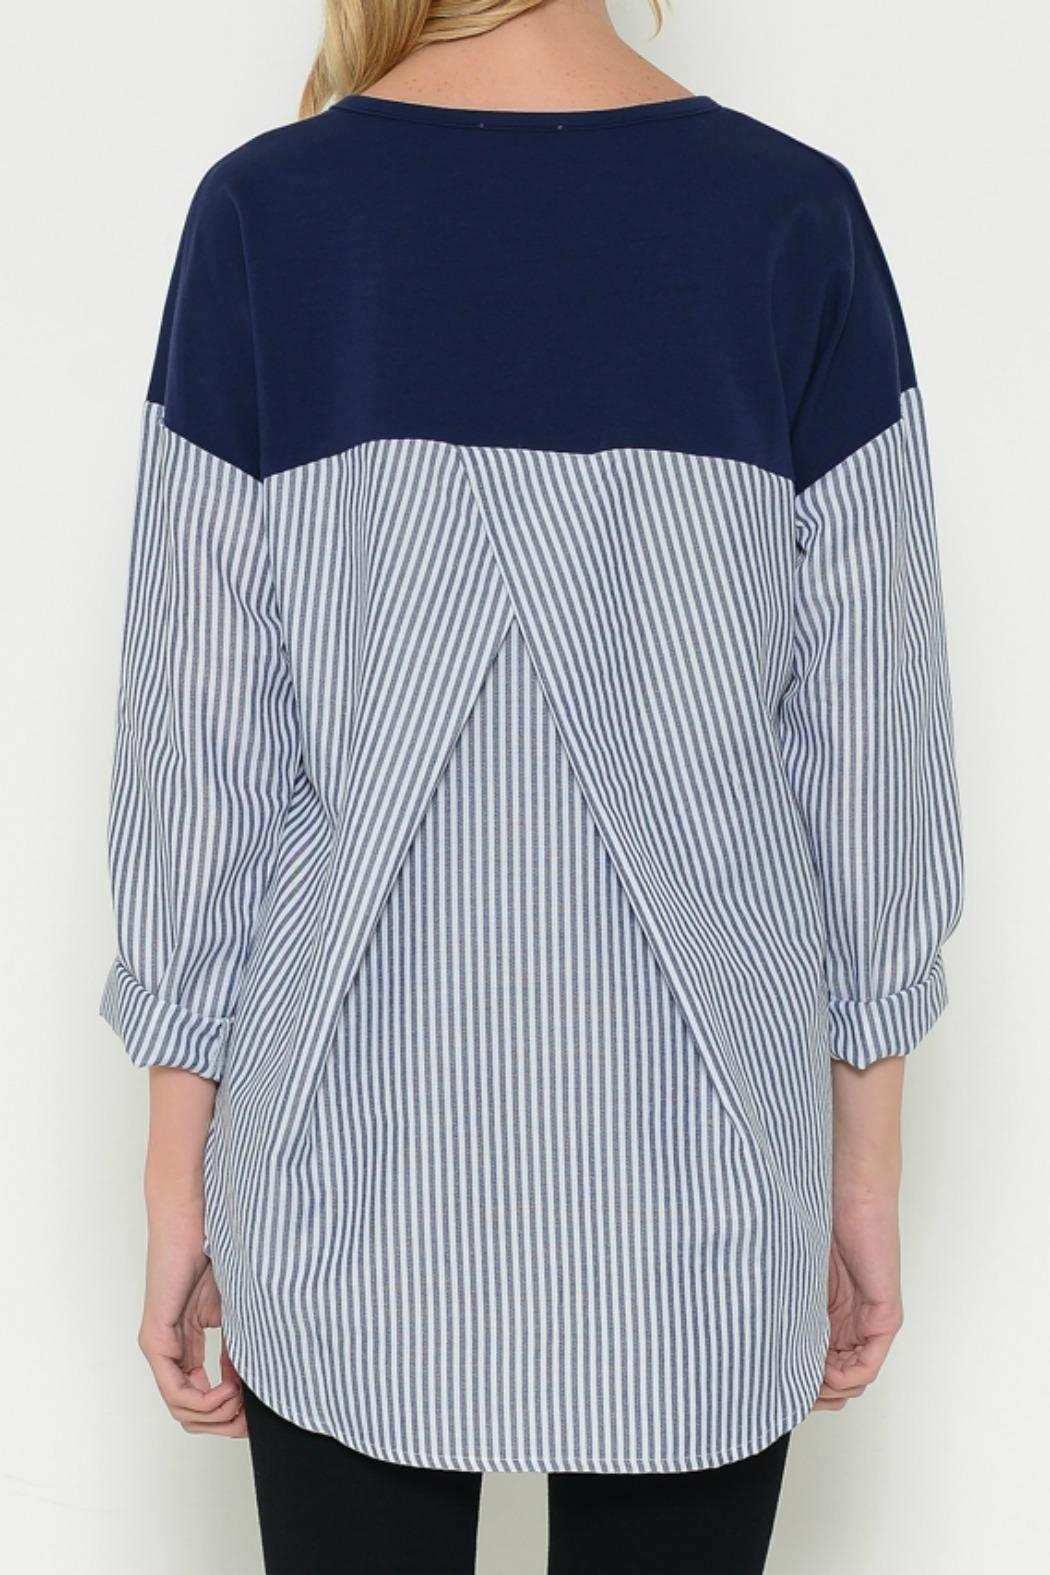 Esley Collection Pullover Contrast Top - Side Cropped Image